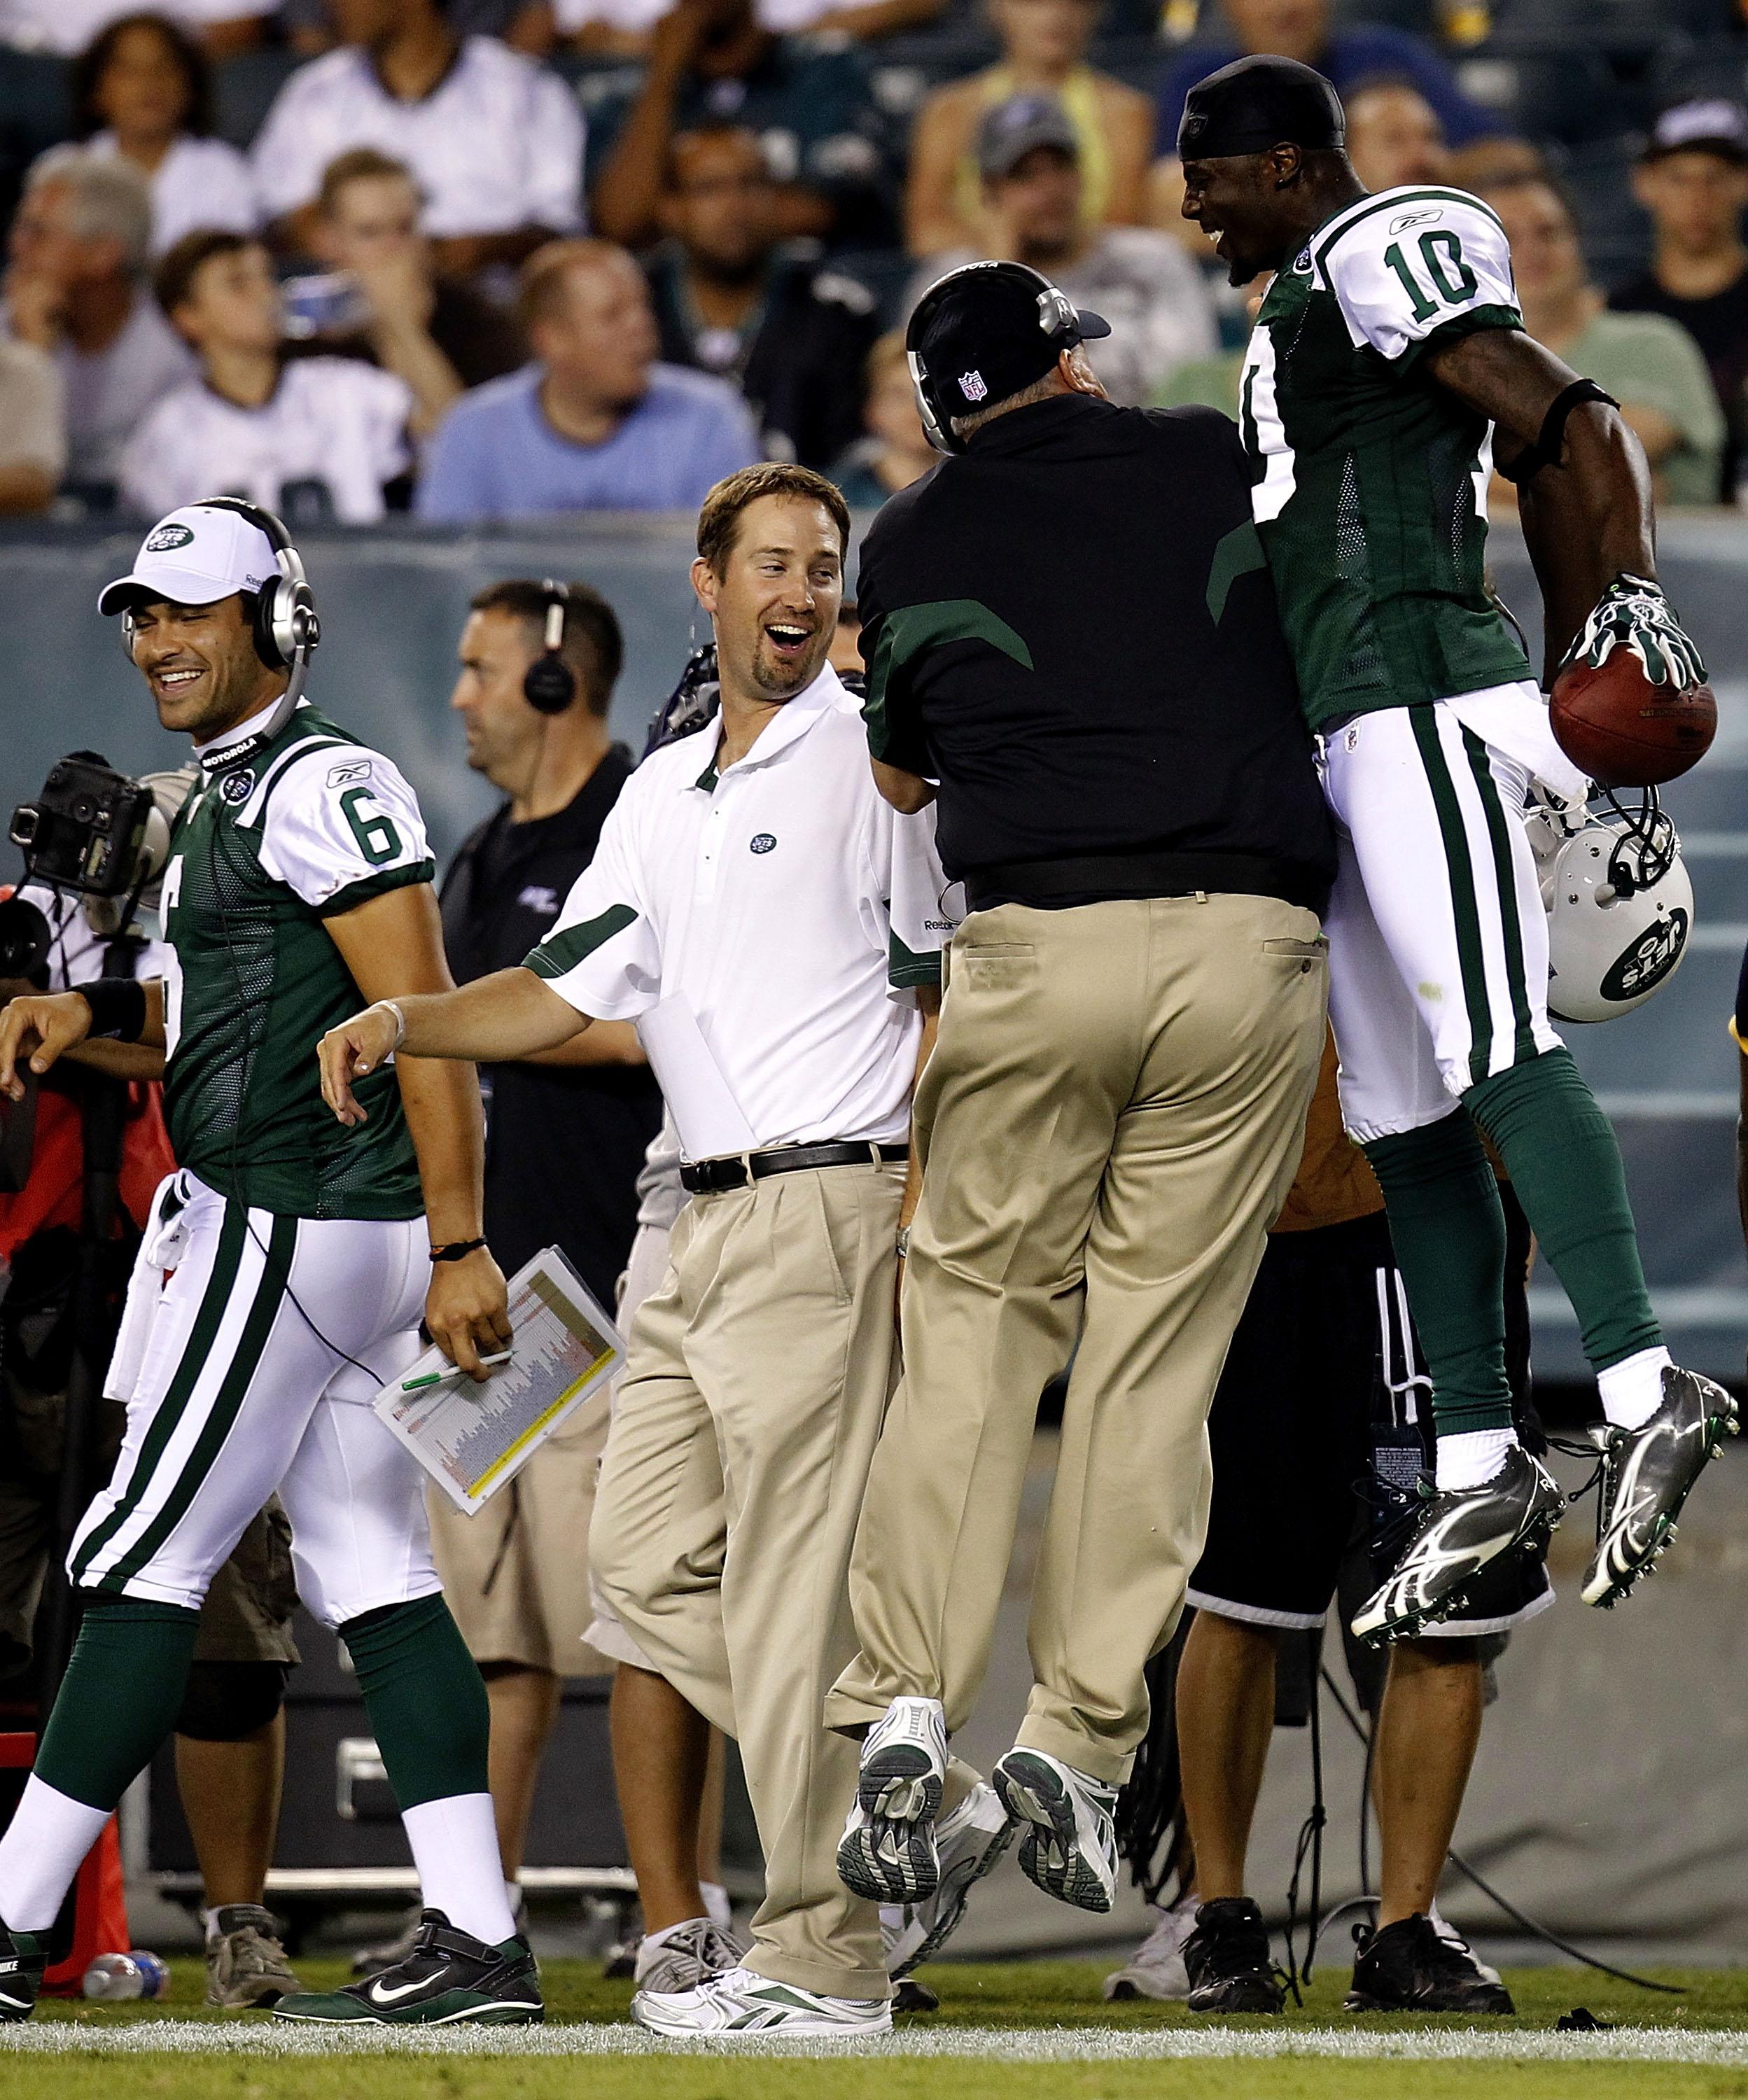 PHILADELPHIA - SEPTEMBER 02: Santonio Holmes #10 and head coach Rex Ryan (back to camera) of the New York Jets celebrate a touchdown as Mark Sanchez #6 and offensive coordinator Brian Schottenheimer of the Jets look on in a preseason game against the Phil